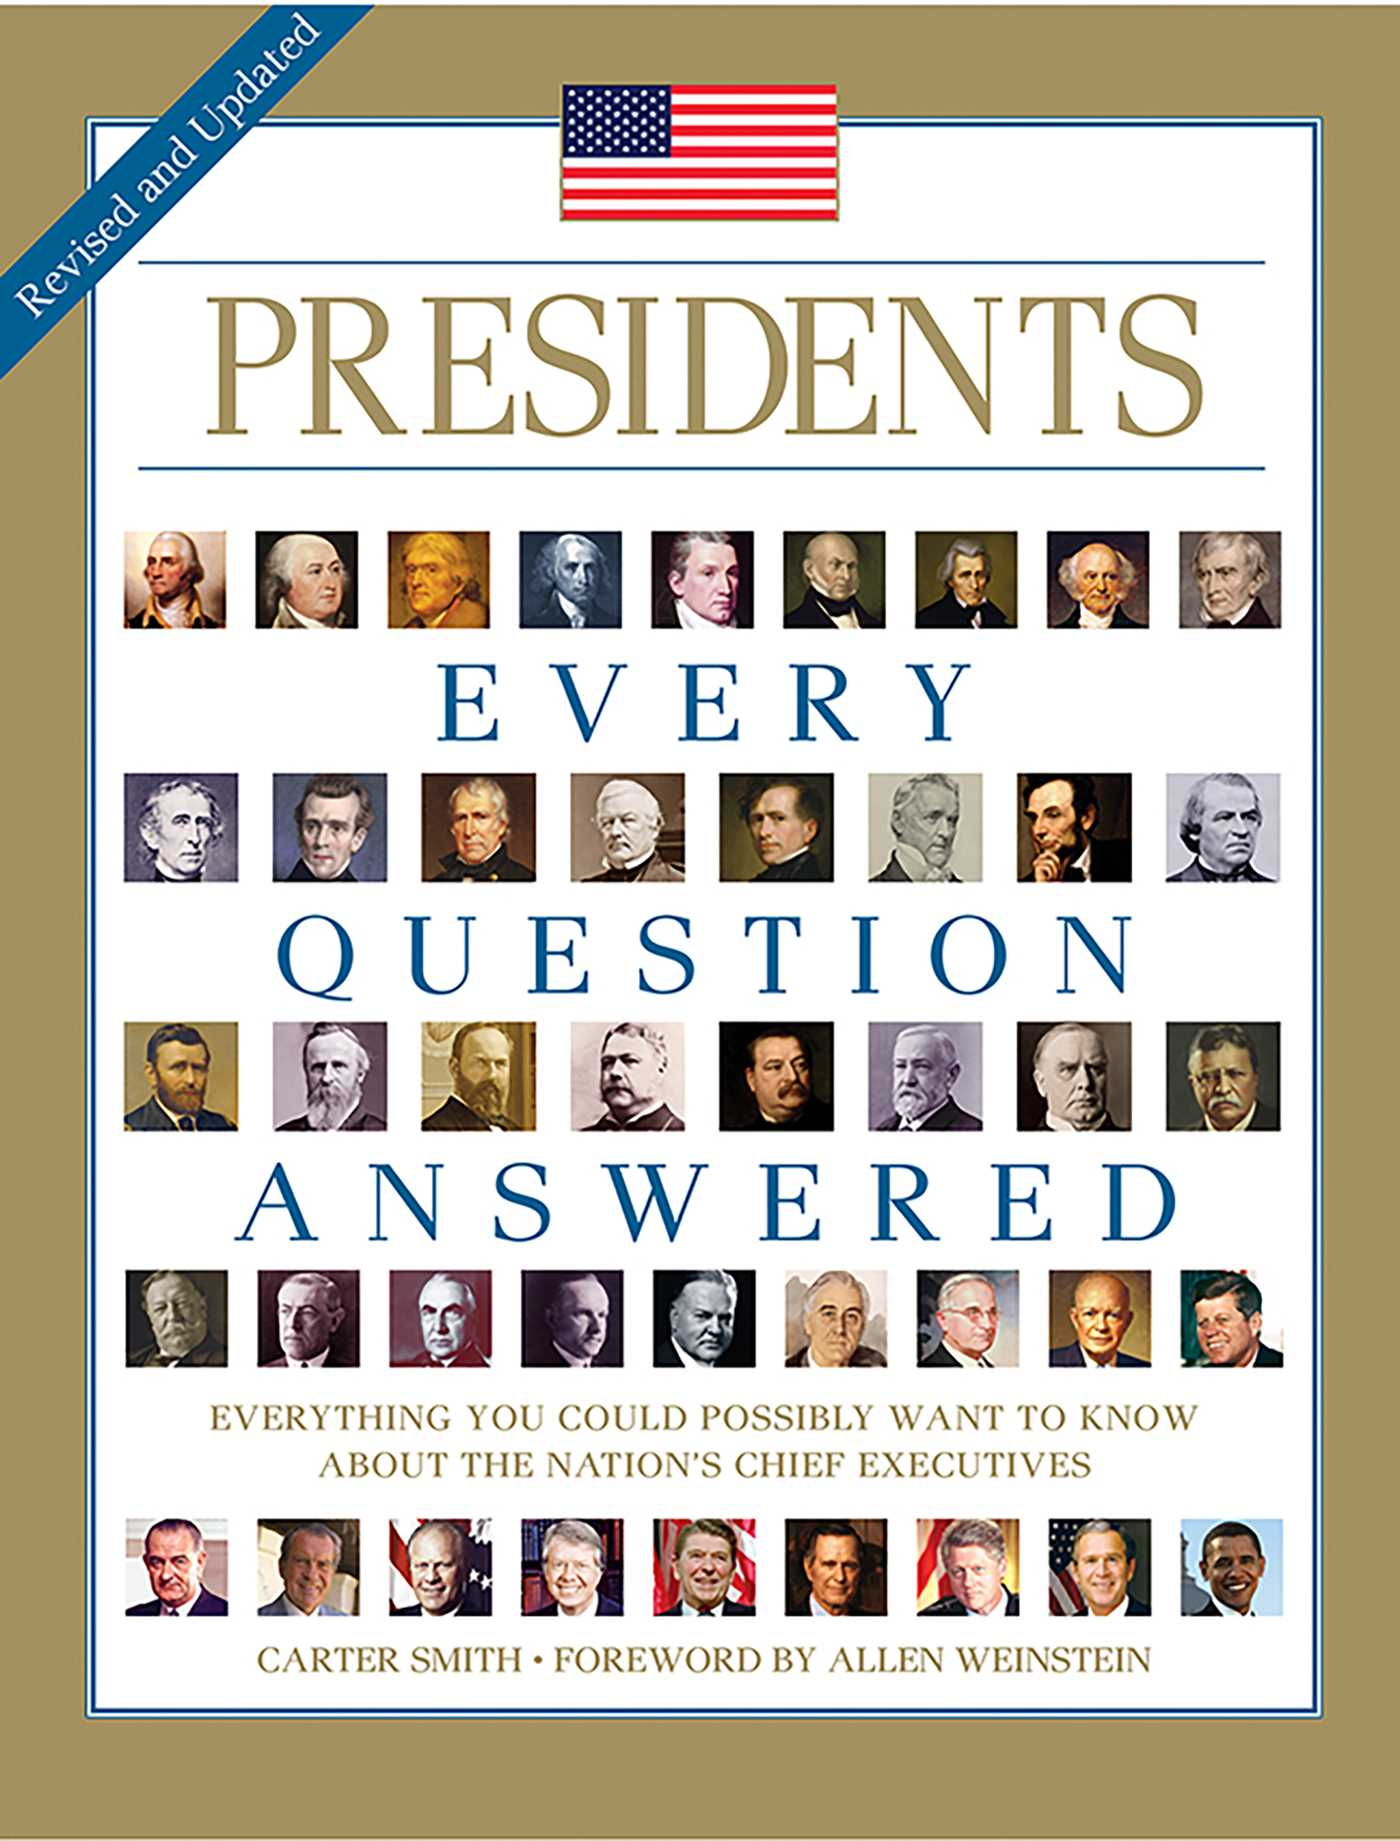 Presidents every question answered 9781626862685 hr